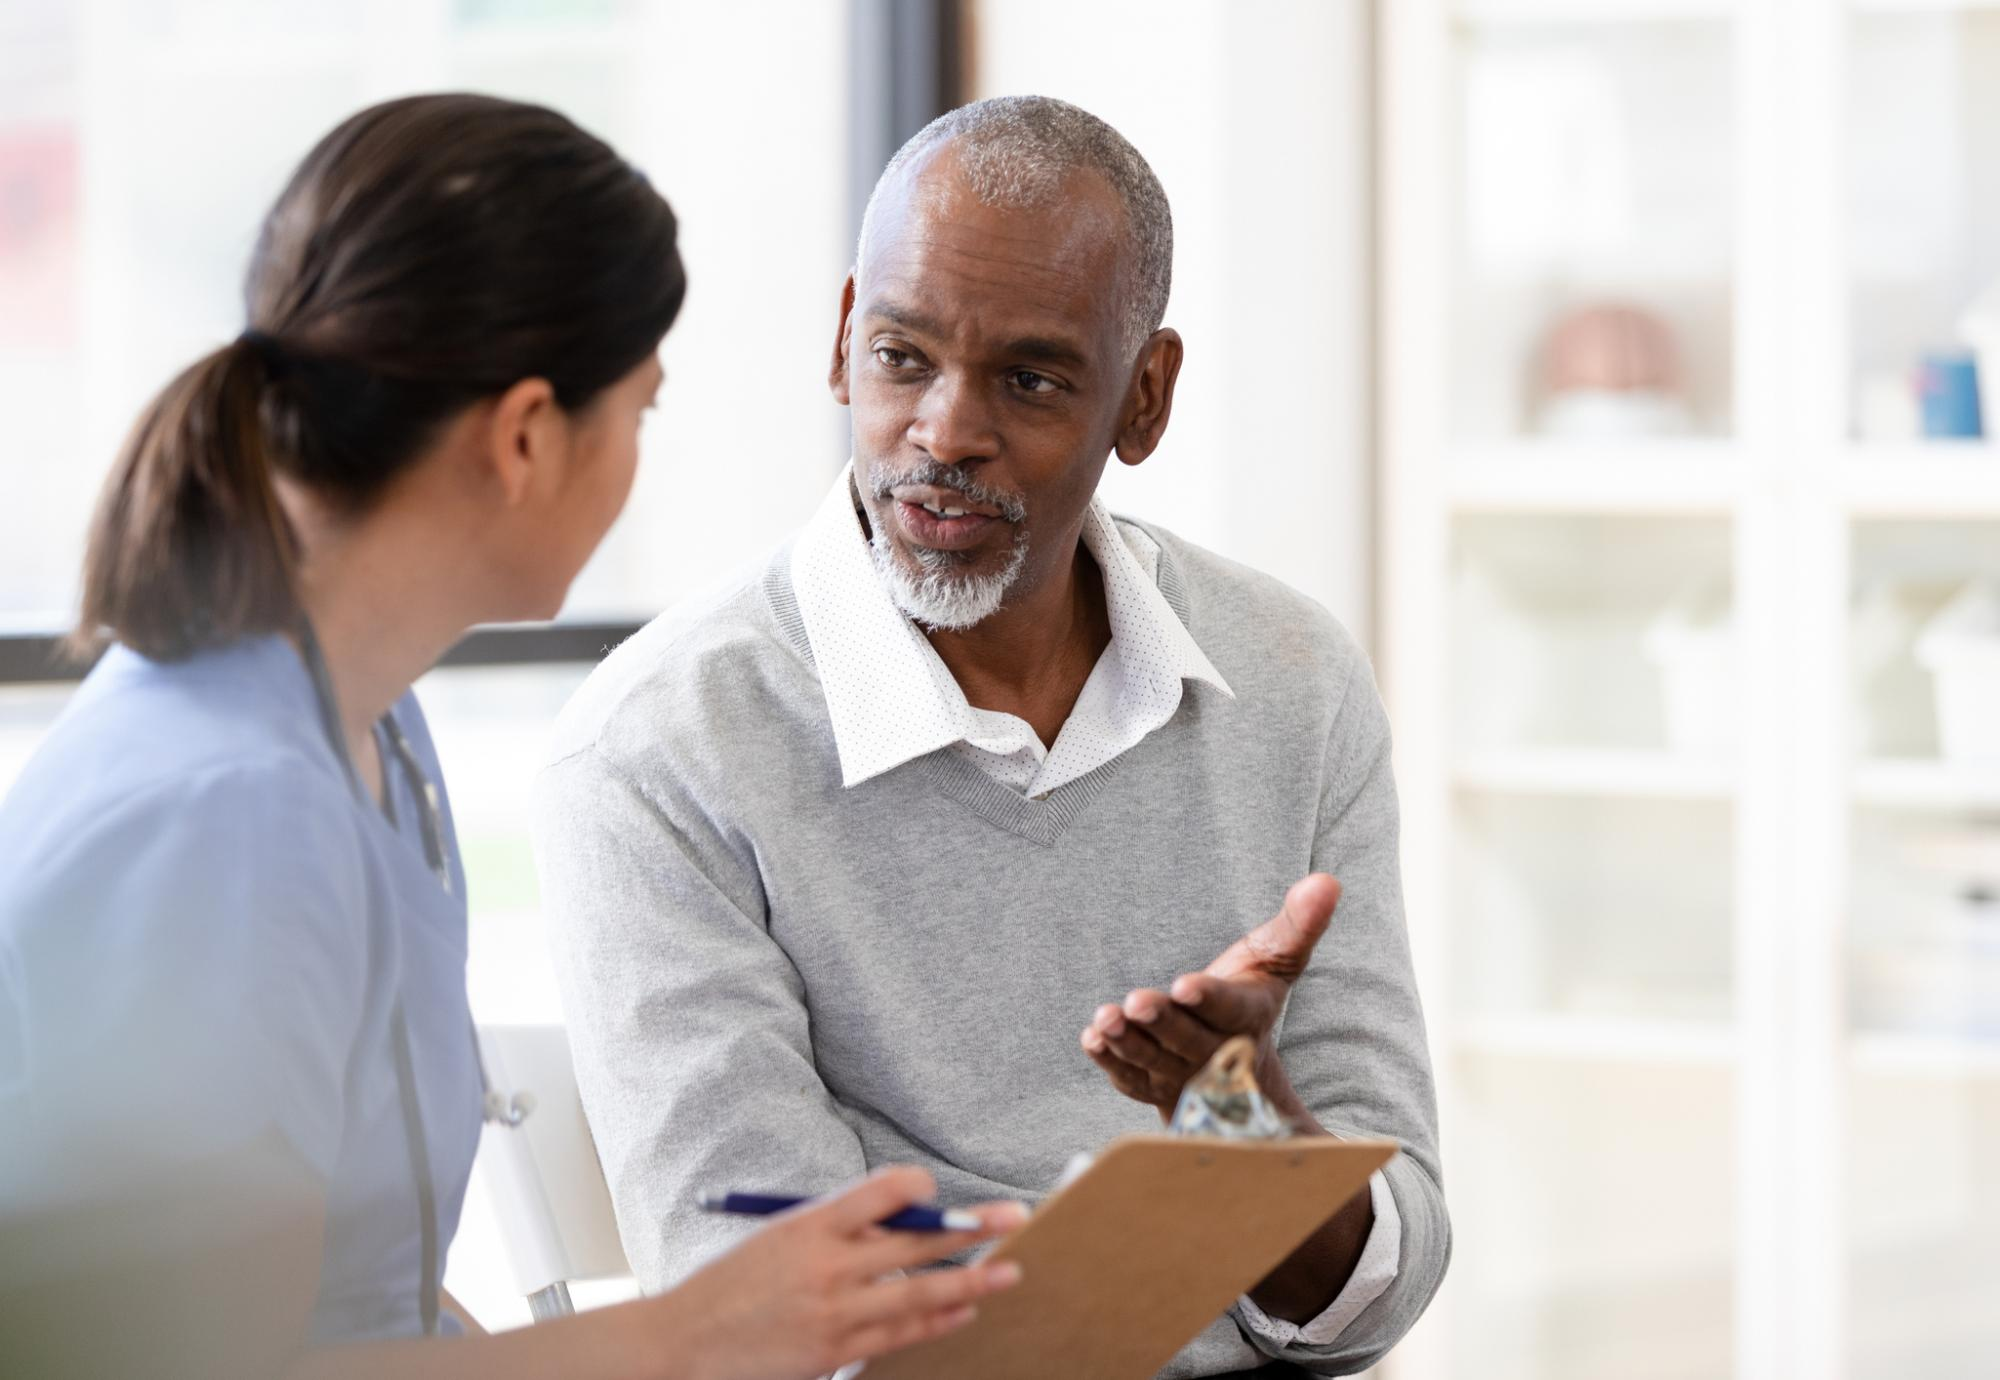 Patient in conversation with a health professional